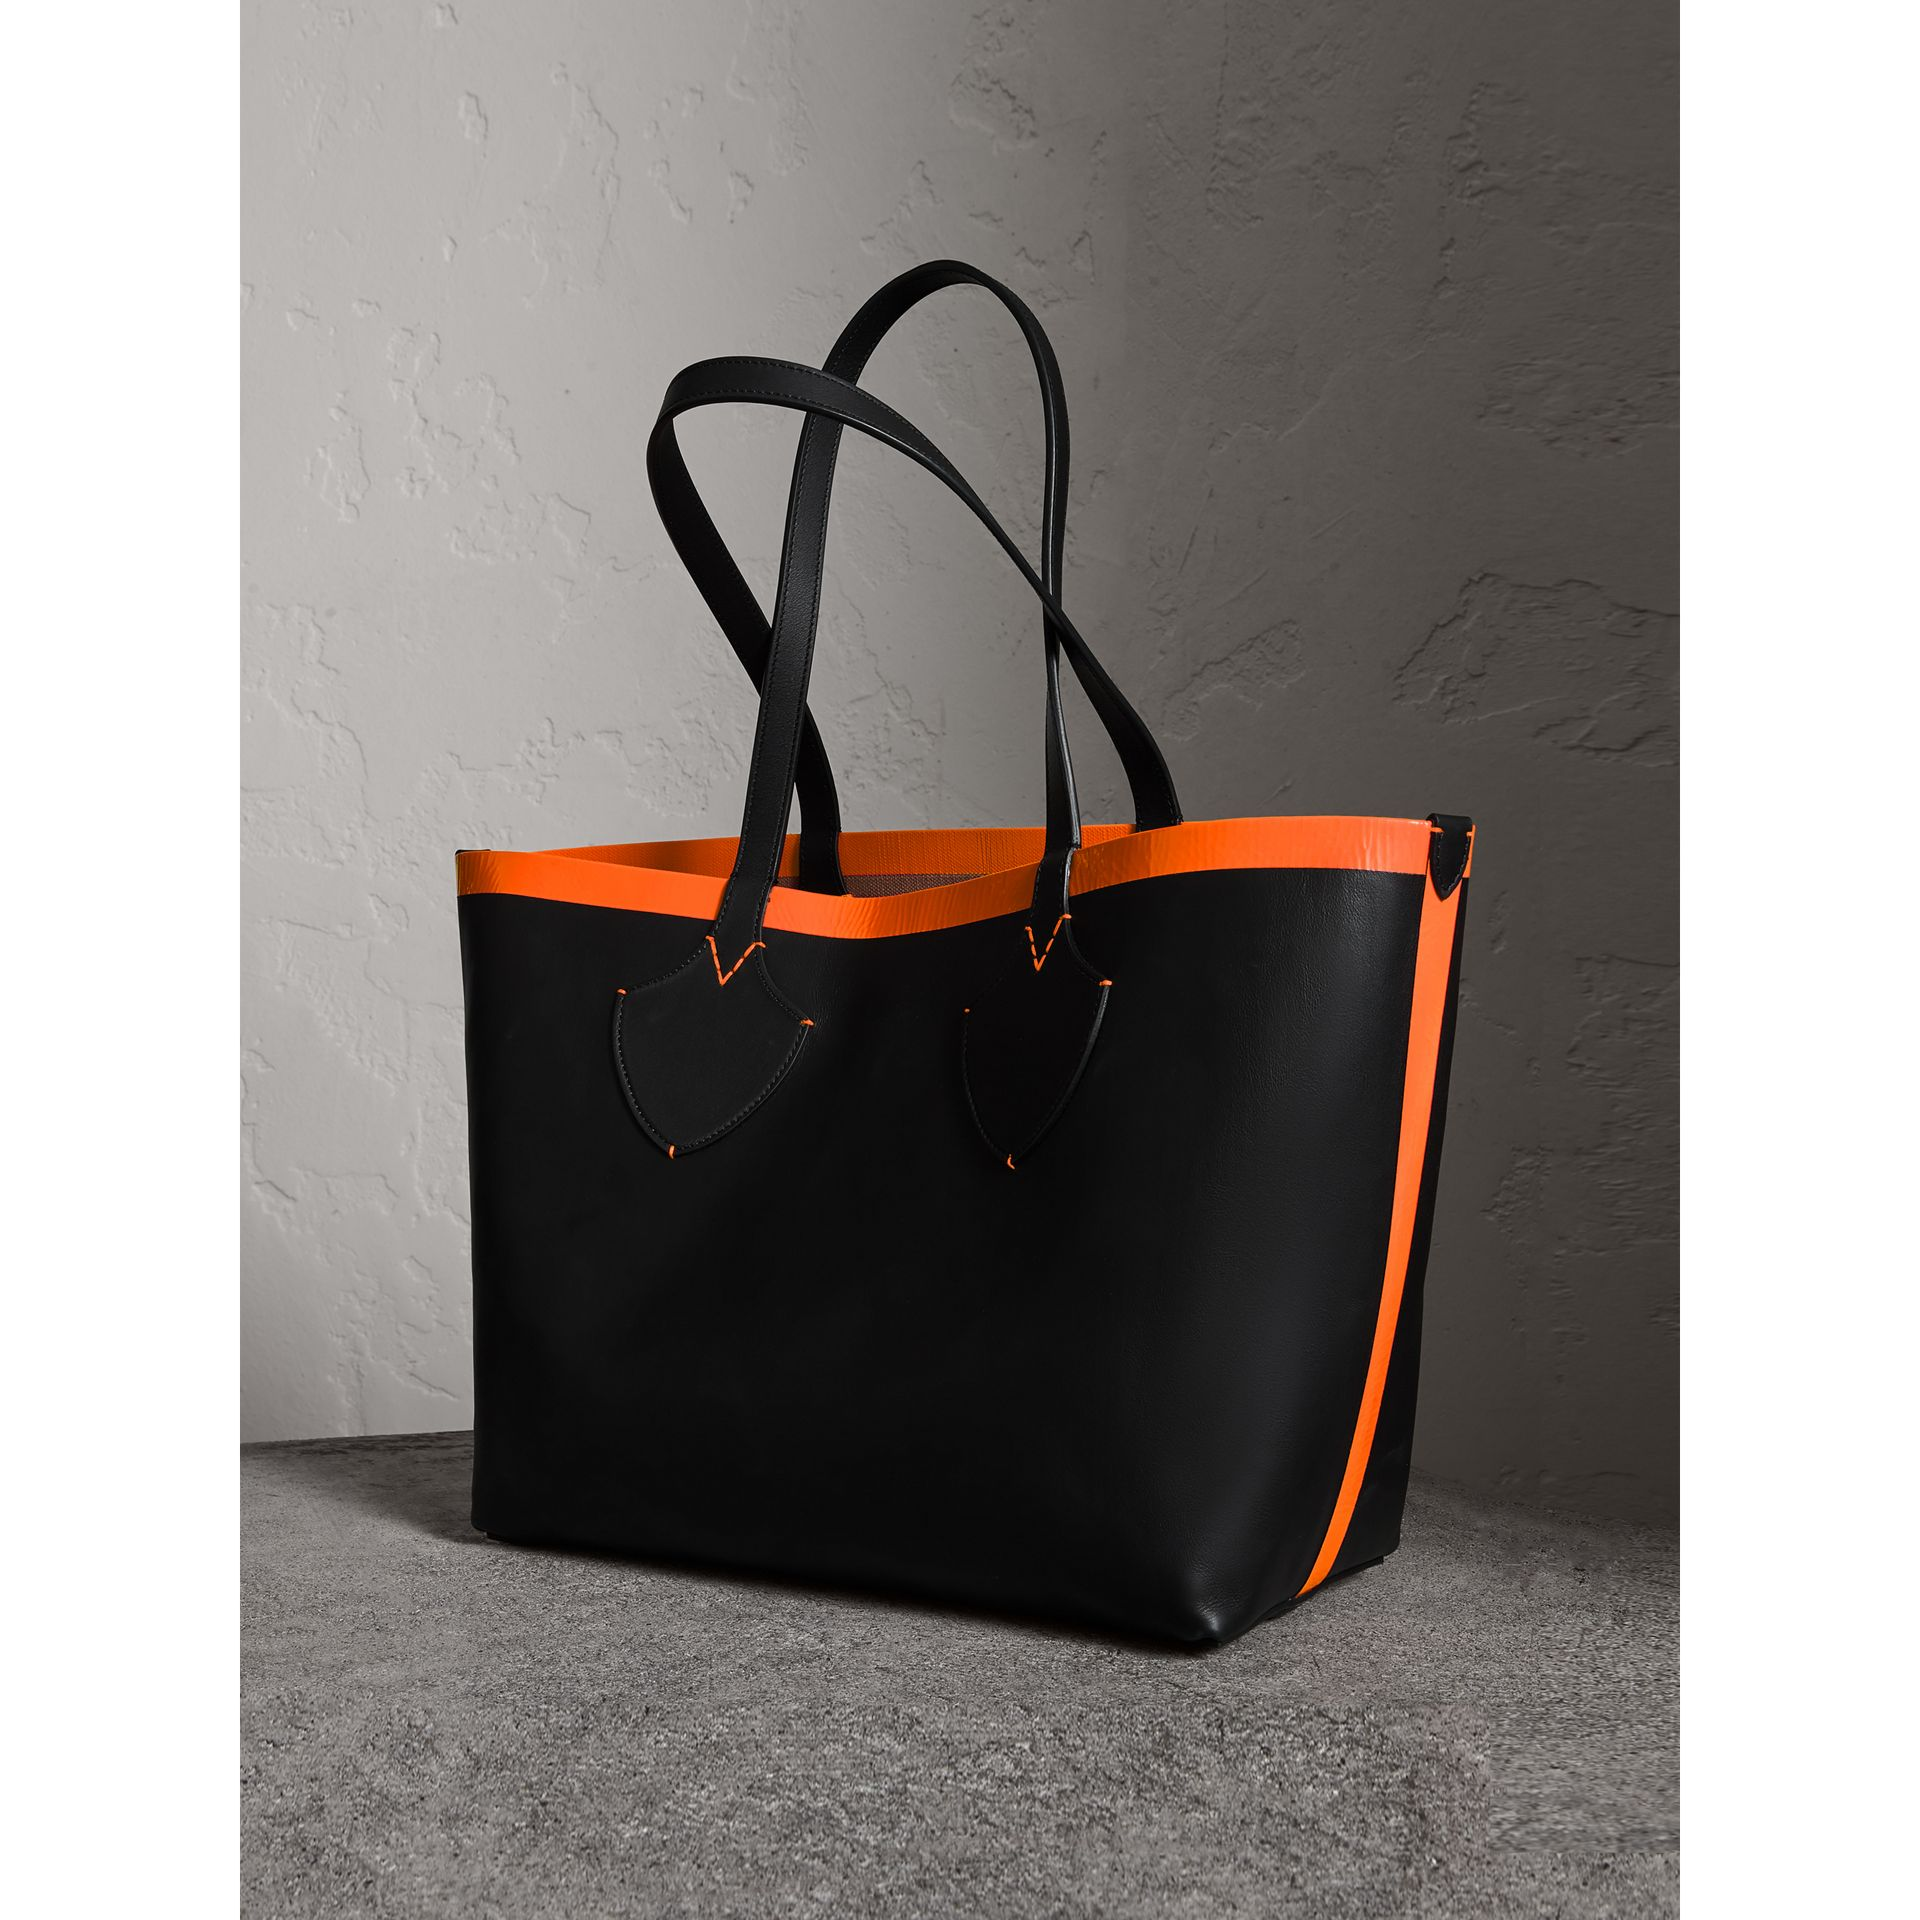 Sac tote The Giant moyen réversible en toile et en cuir (Noir/orange Néon) | Burberry - photo de la galerie 4